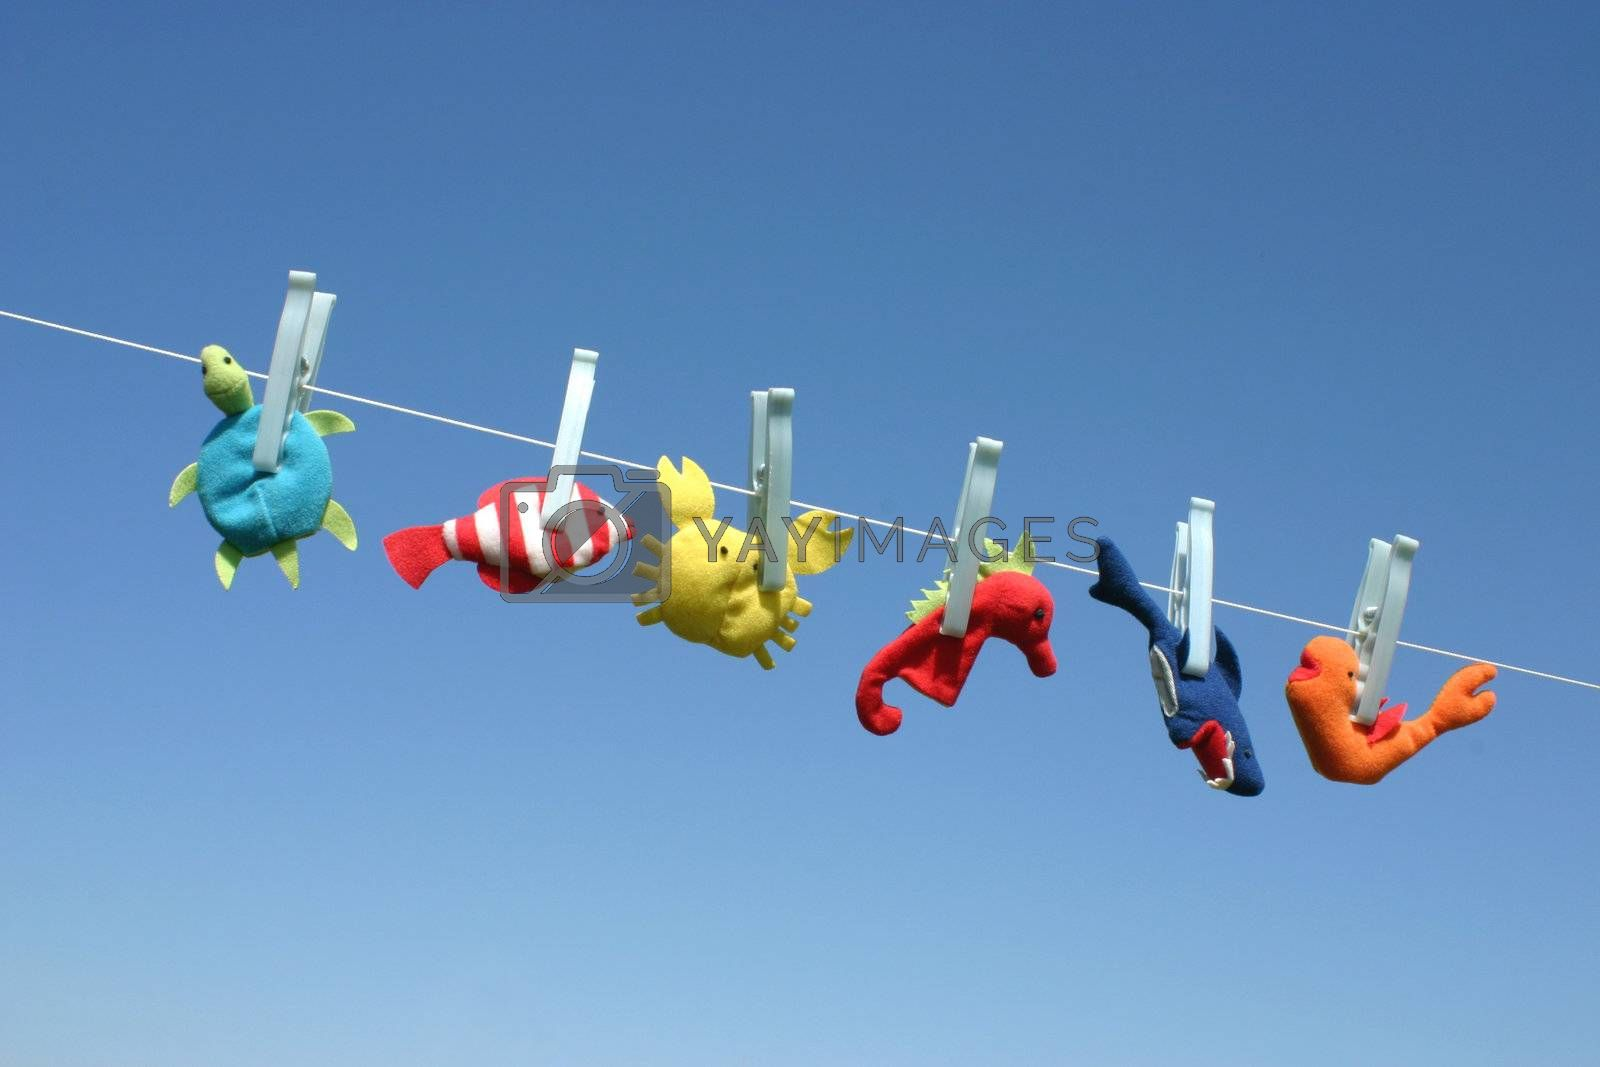 Colorful sea animal toys hanging on the laundry wire against blue sky and drying